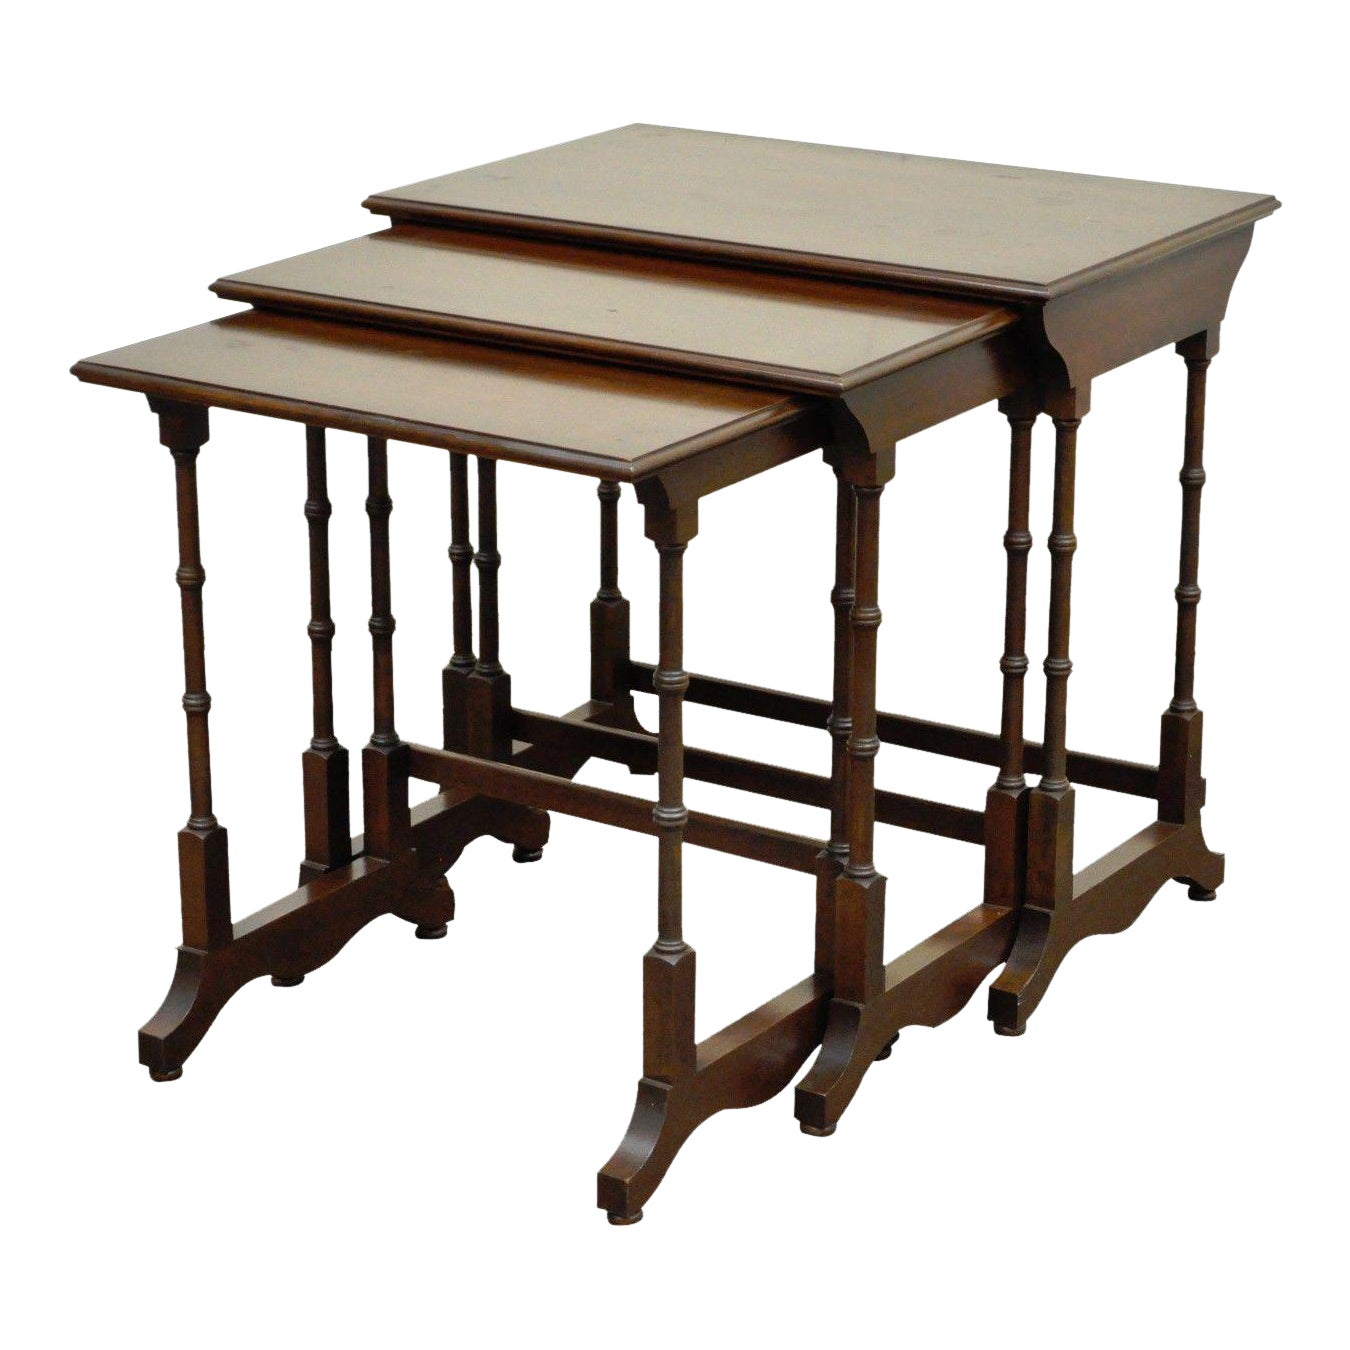 vintage ethan allen court solid cherry nesting nest side end tables chairish iron glass table tall dining room oak magnolia farms show small square outdoor diy indoor puppy pen